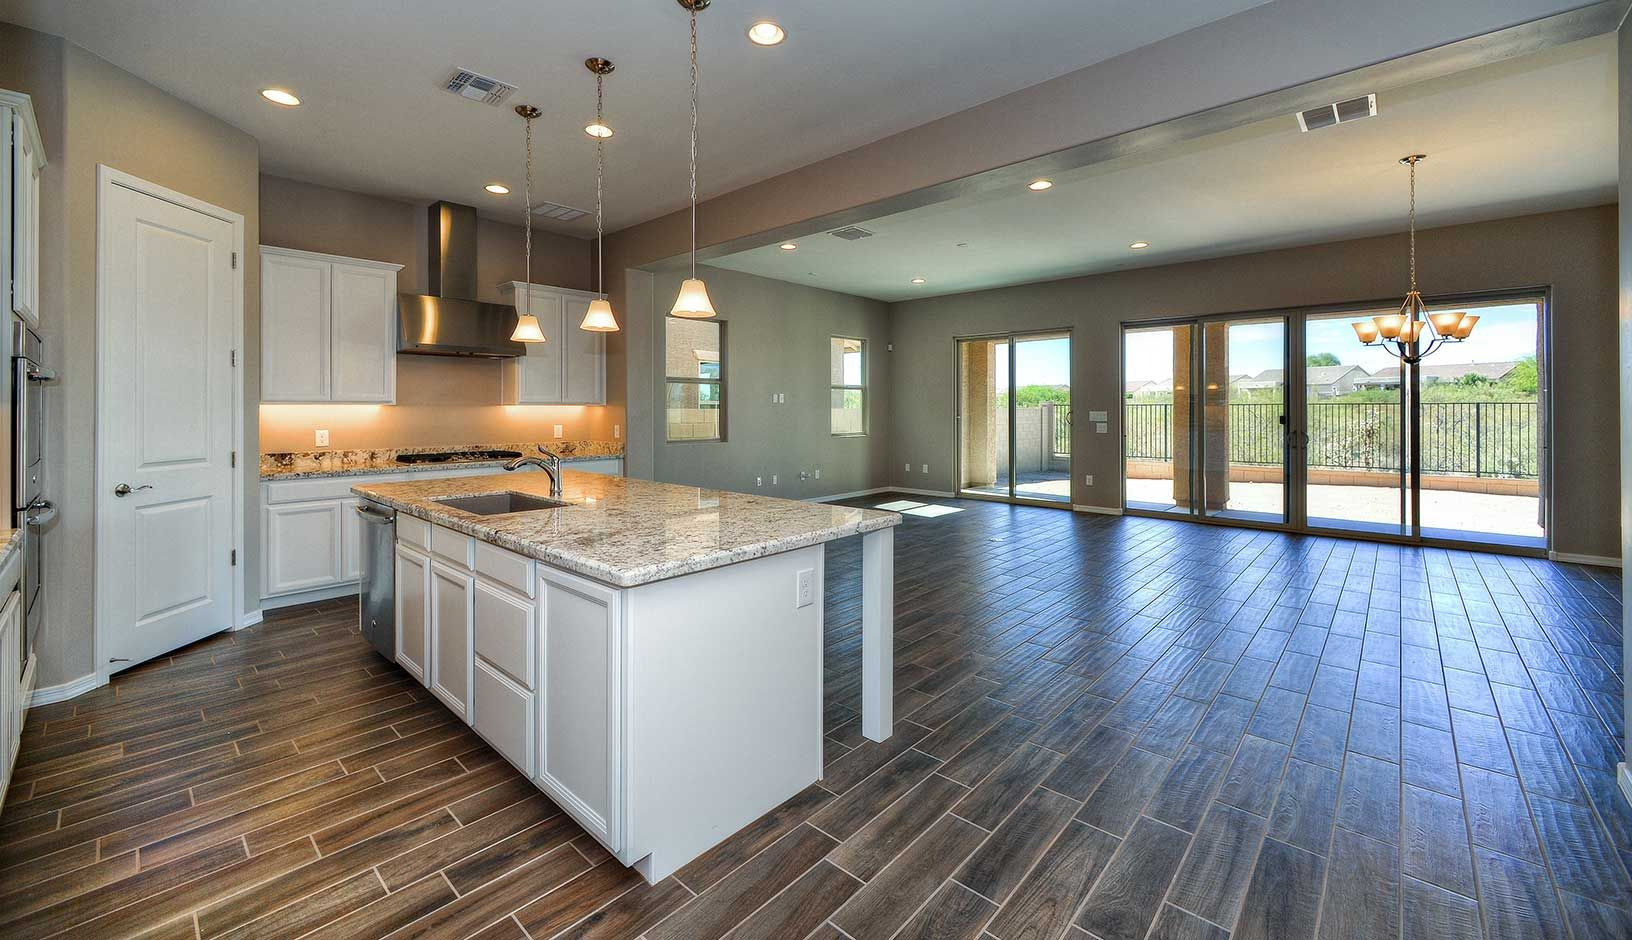 Move-In Ready Home of the Week: The Cove at Center Pointe Vistoso ...